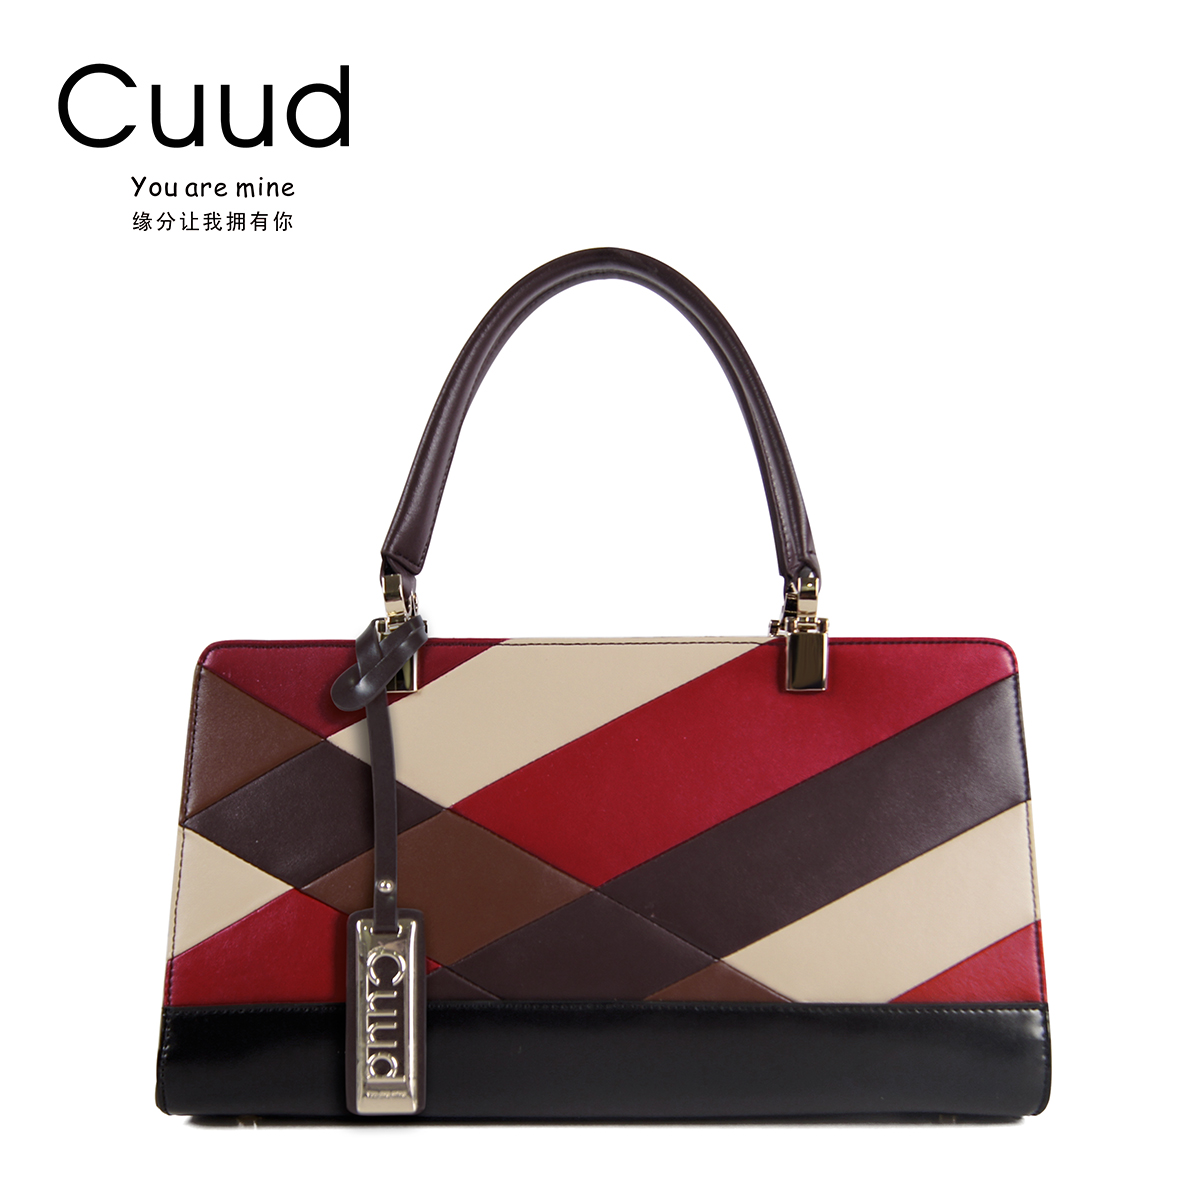 Cuud bag women 2017 new European and American tide brand color bag women's fashion handbag women's leather killer bag yuanyu 2018 new hot free shipping real python skin snake skin color women handbag elegant color serpentine fashion leather bag